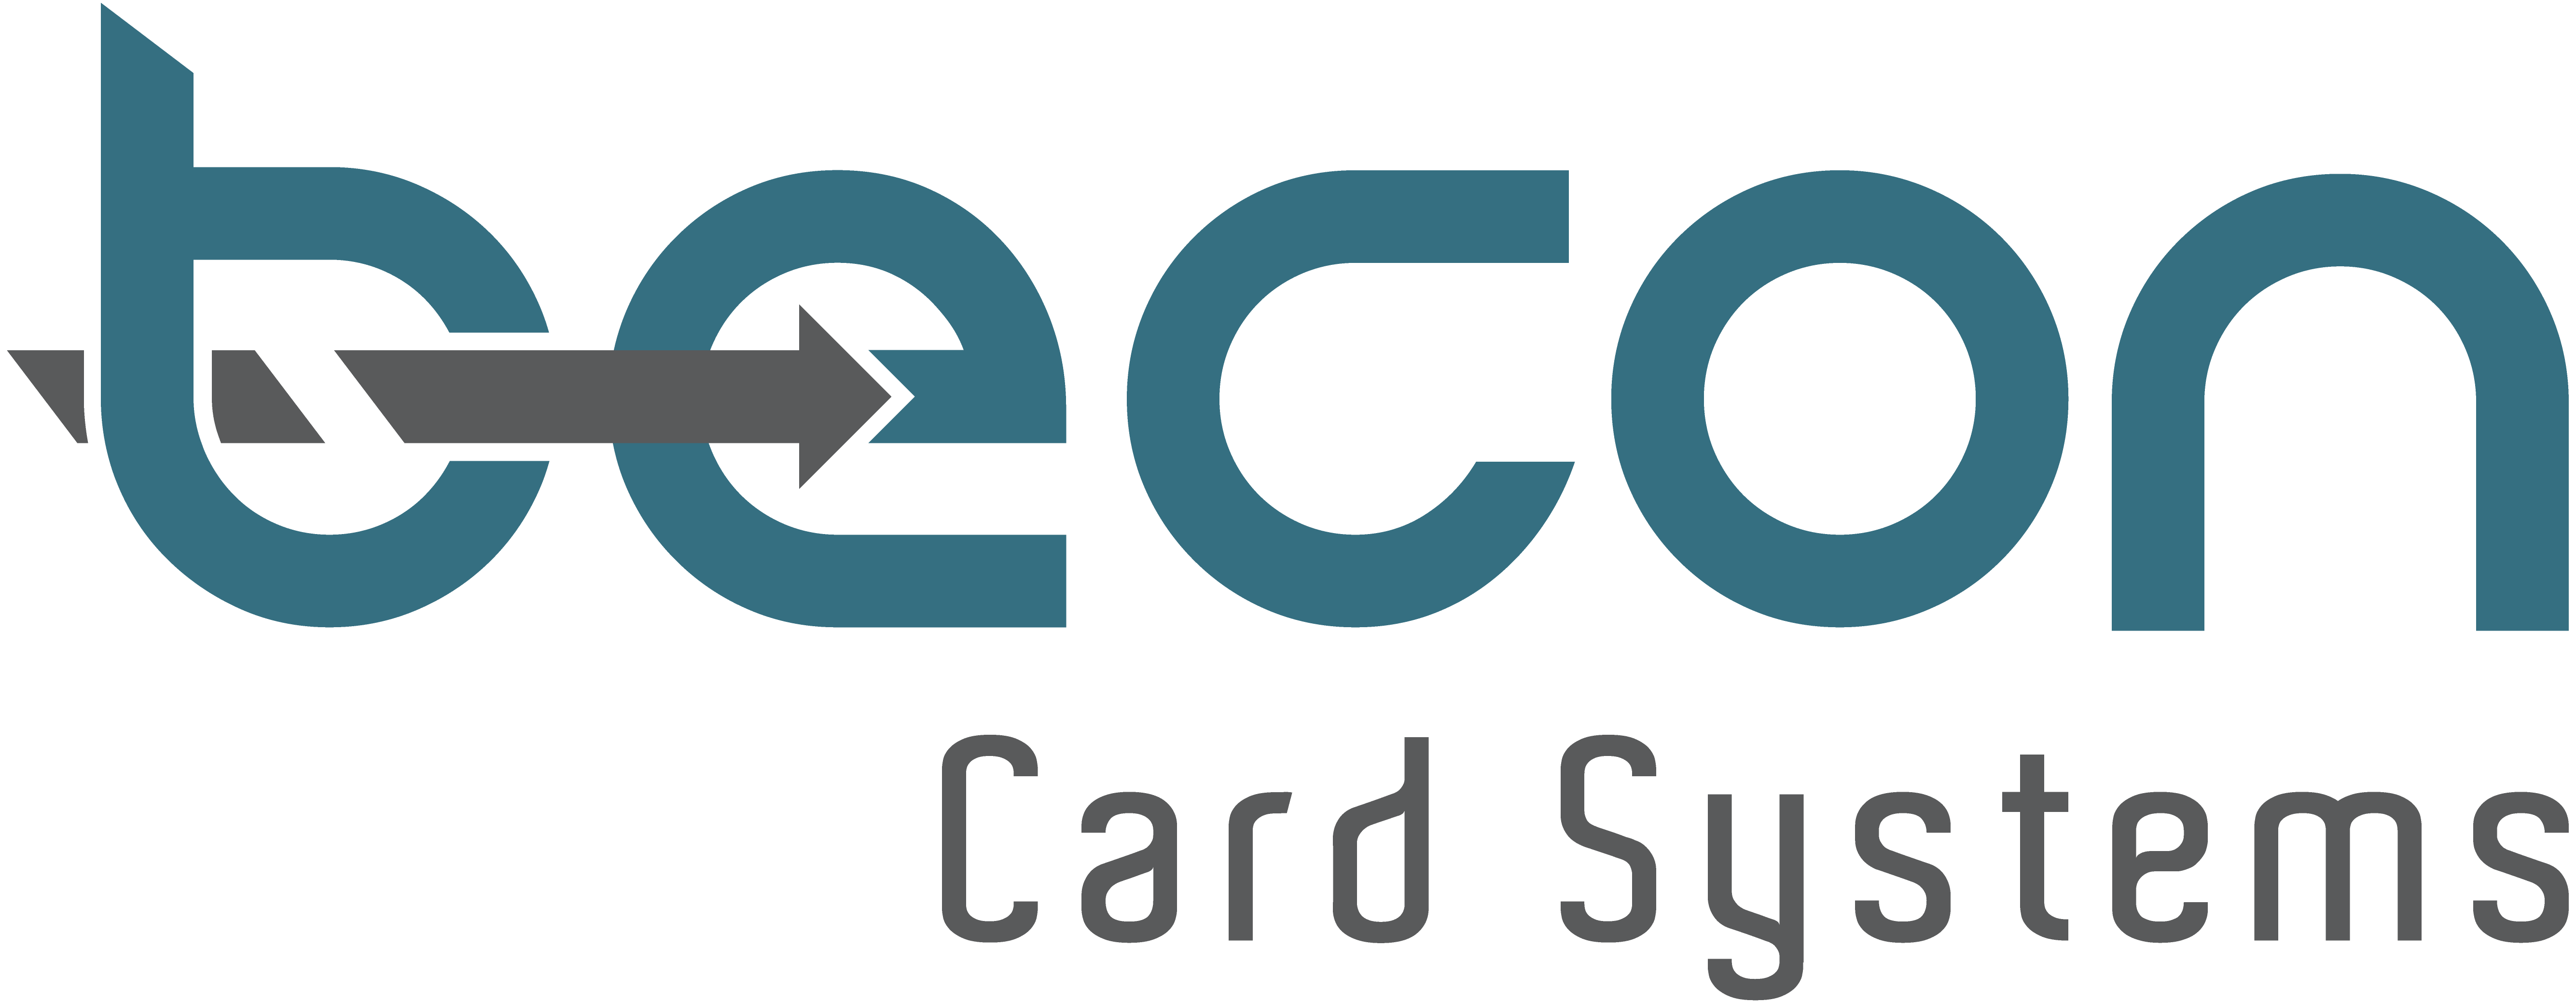 Becon Card Systems